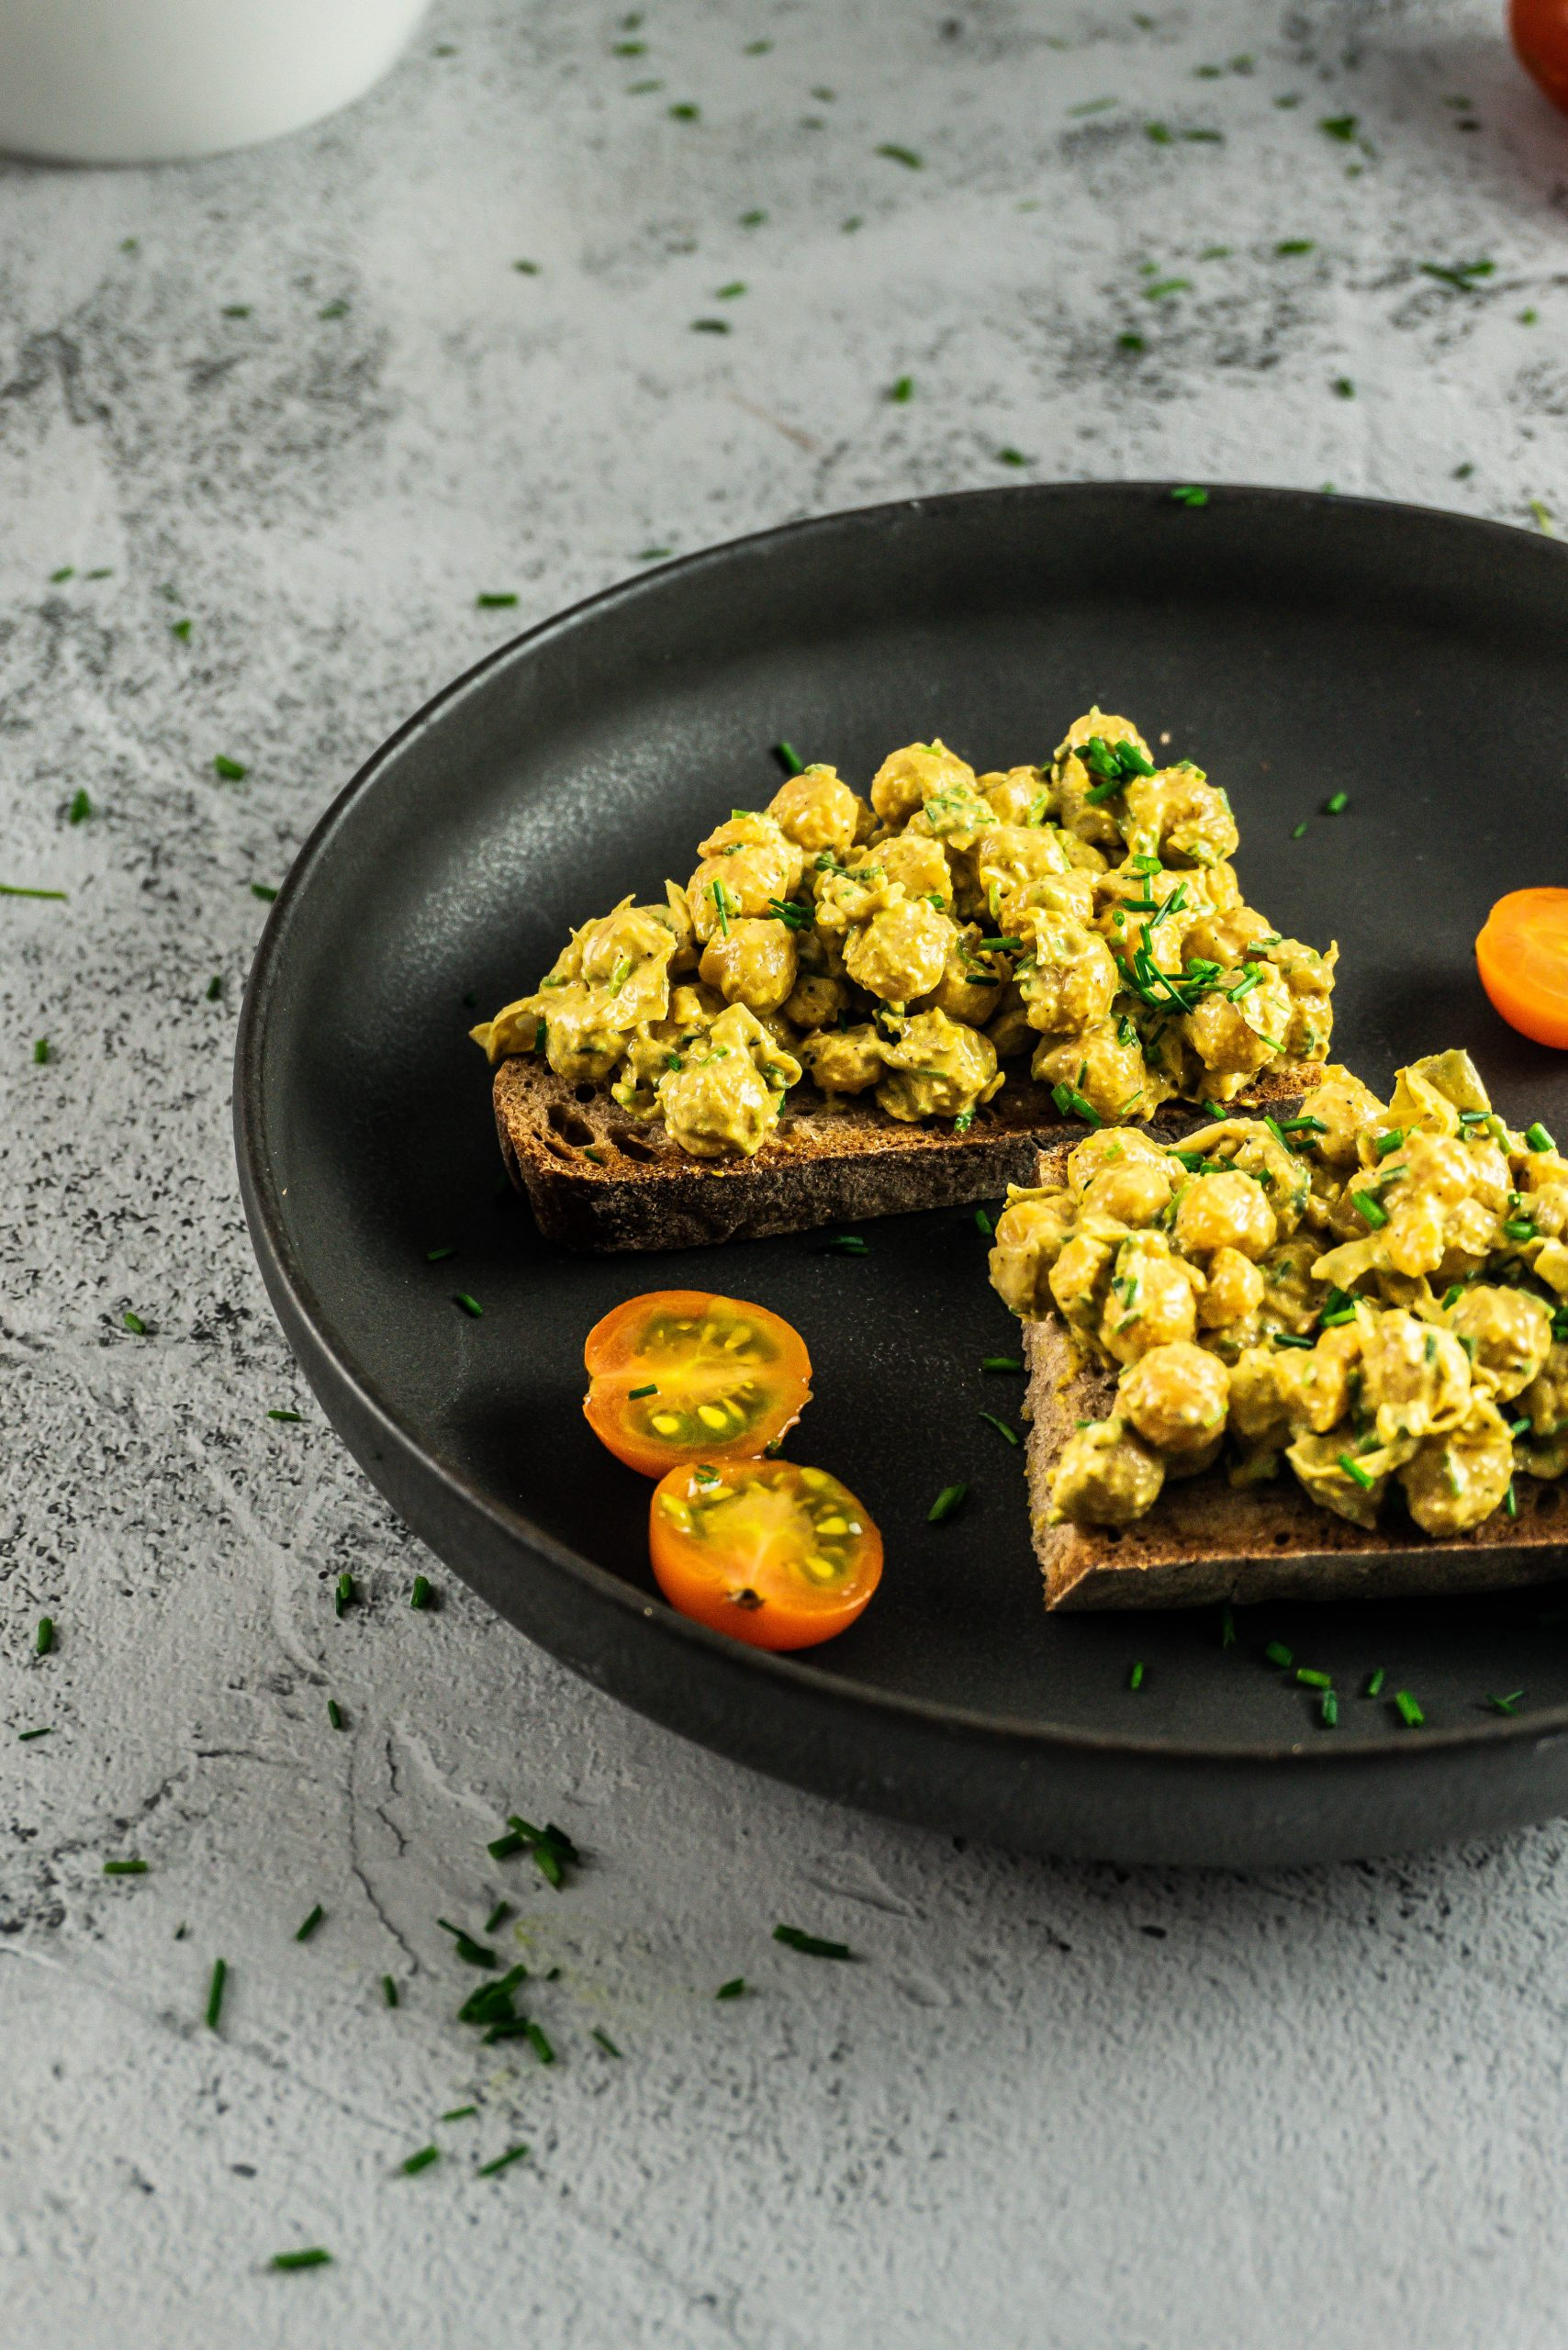 Vegan Curried Chickpea Spread on a dark plate with chopped chives and tomatoes visible in the background, photographed from a three-quarter angle